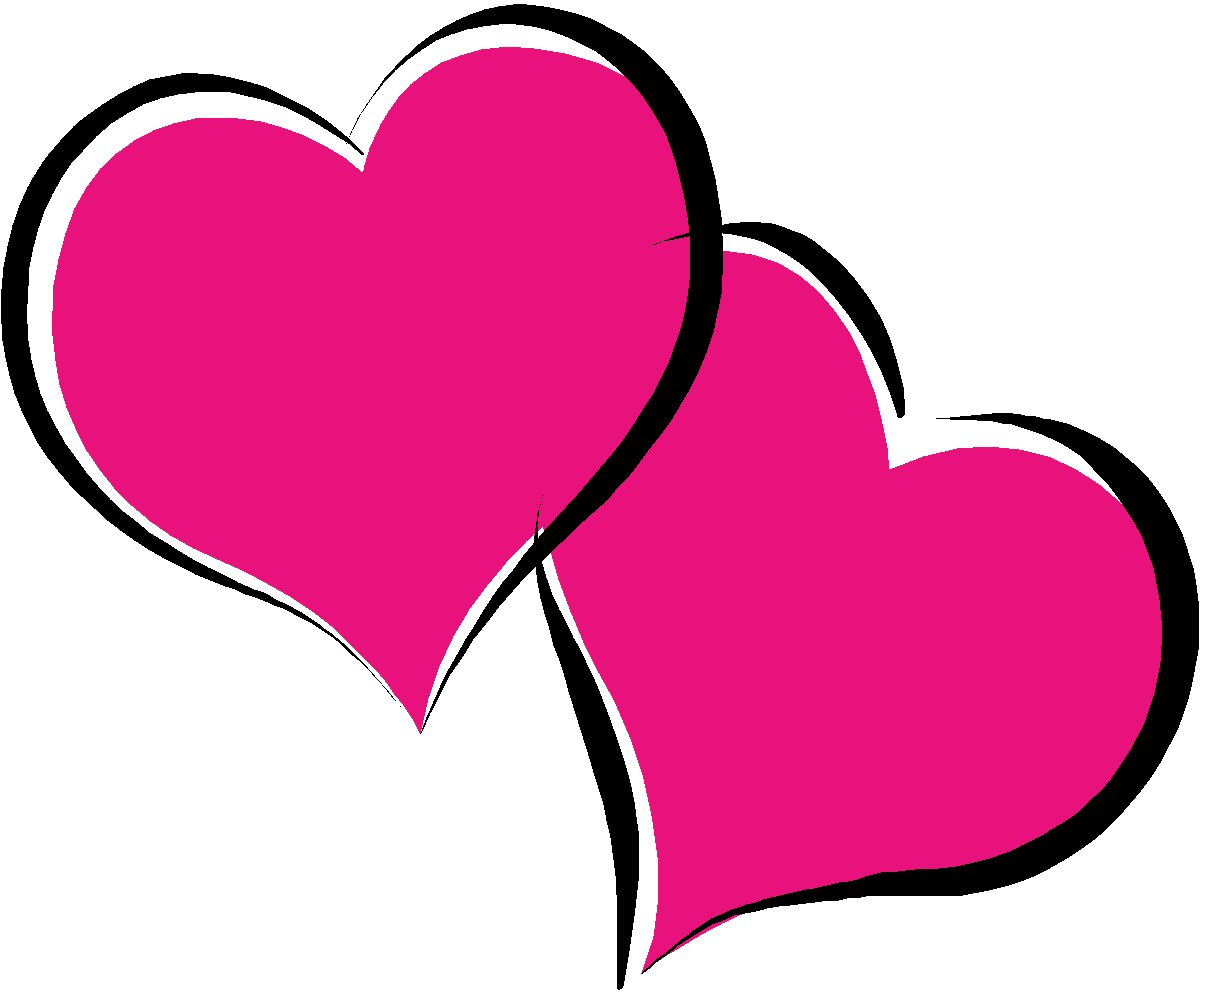 Heart download clip art. Free clipart of valentine hearts